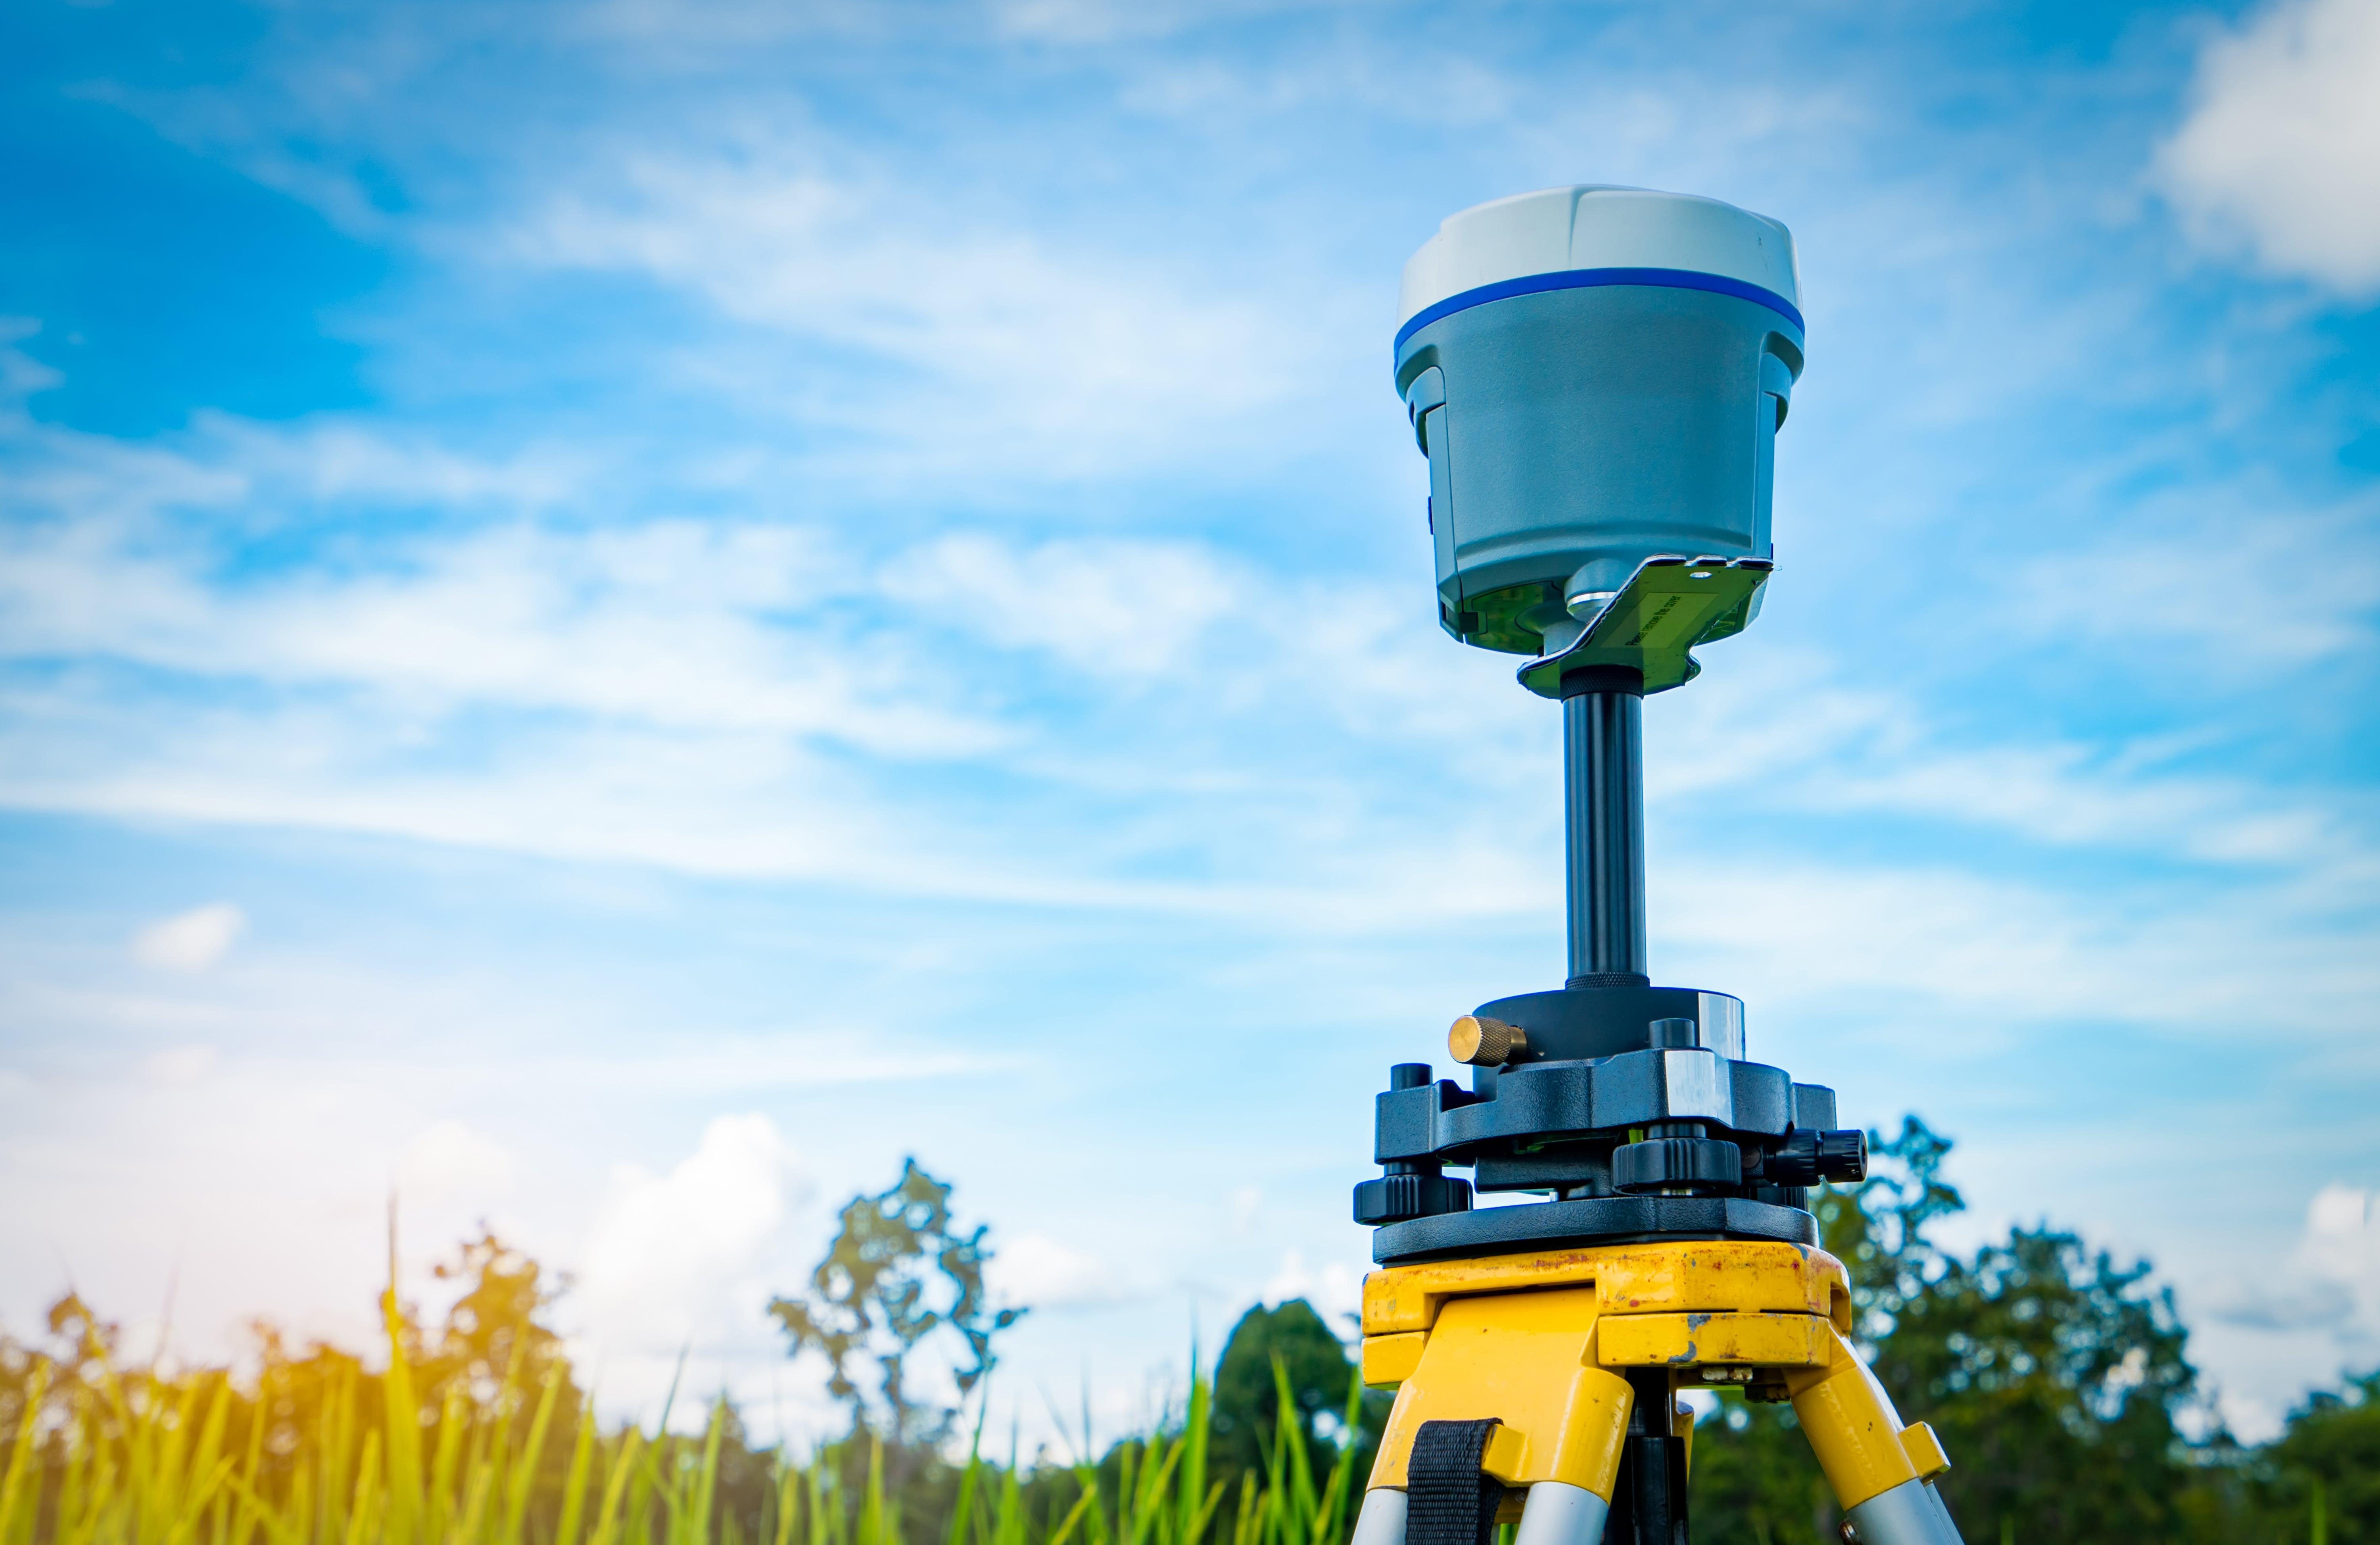 GPS surveying instrument on blue sky and rice field background © Artinun, Adobe stock